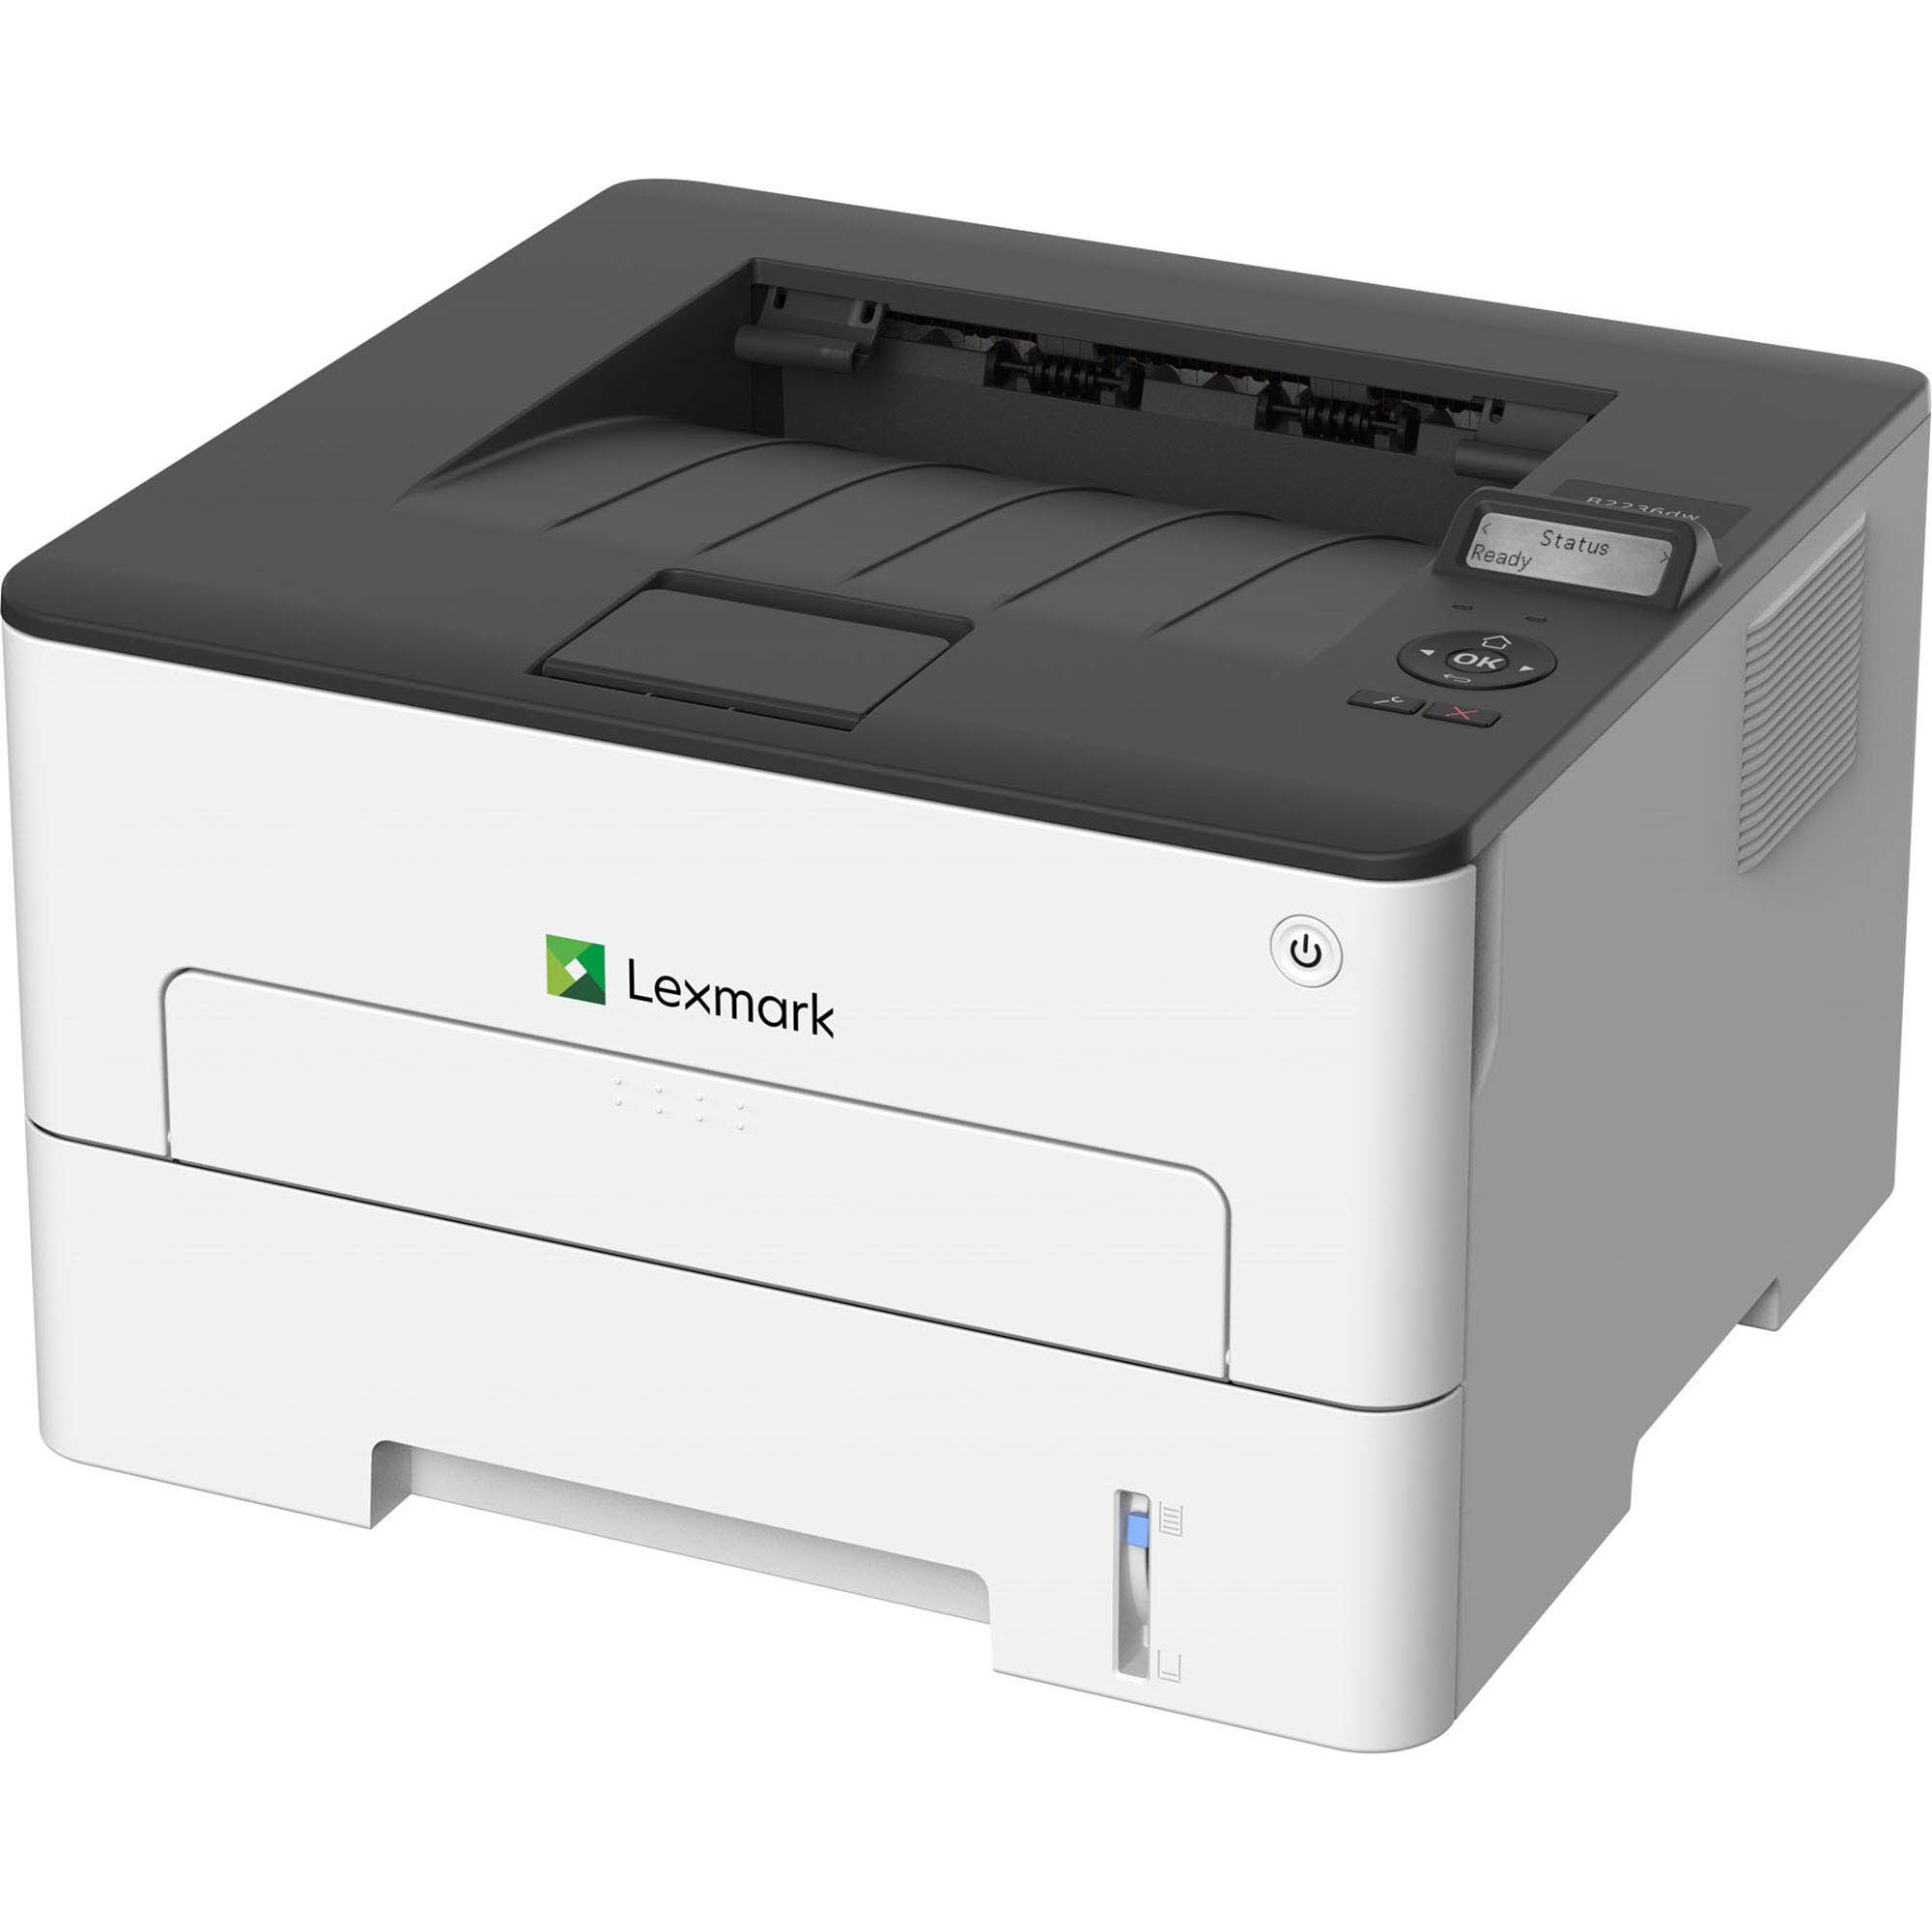 Image for LEXMARK GO LINE B2236DW WIRELESS MONO LASER PRINTER A4 from Memo Office and Art